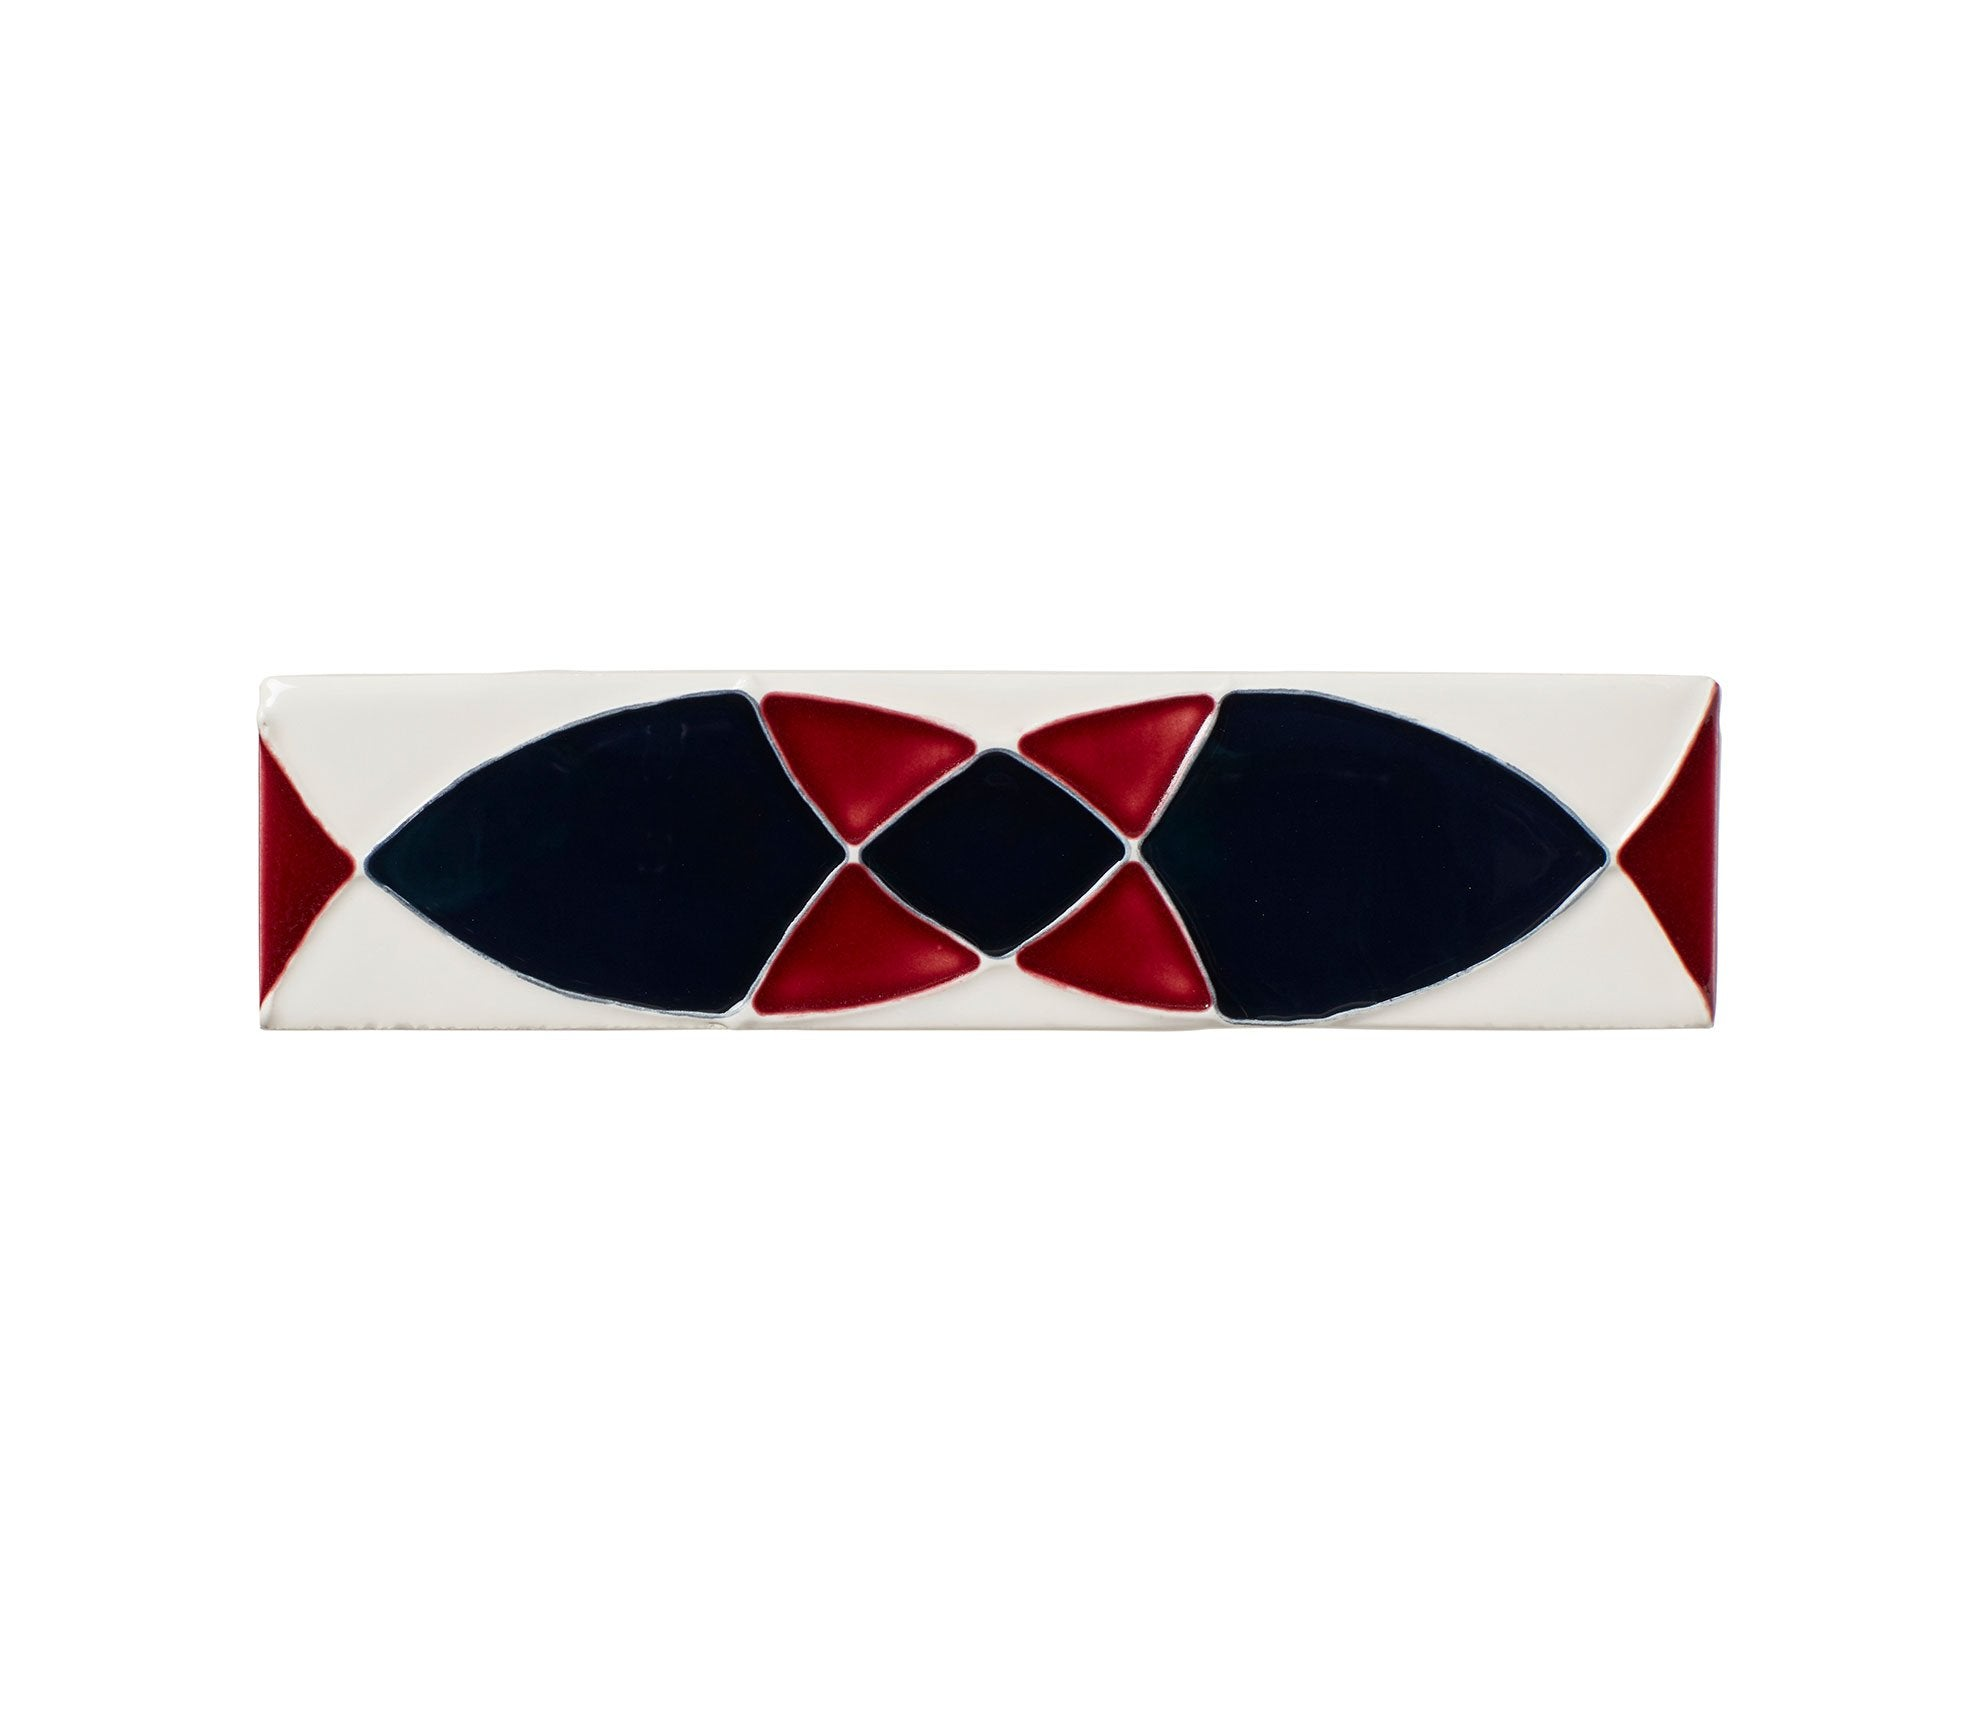 Hanley Tube Lined Decorative Tiles Product Image 36